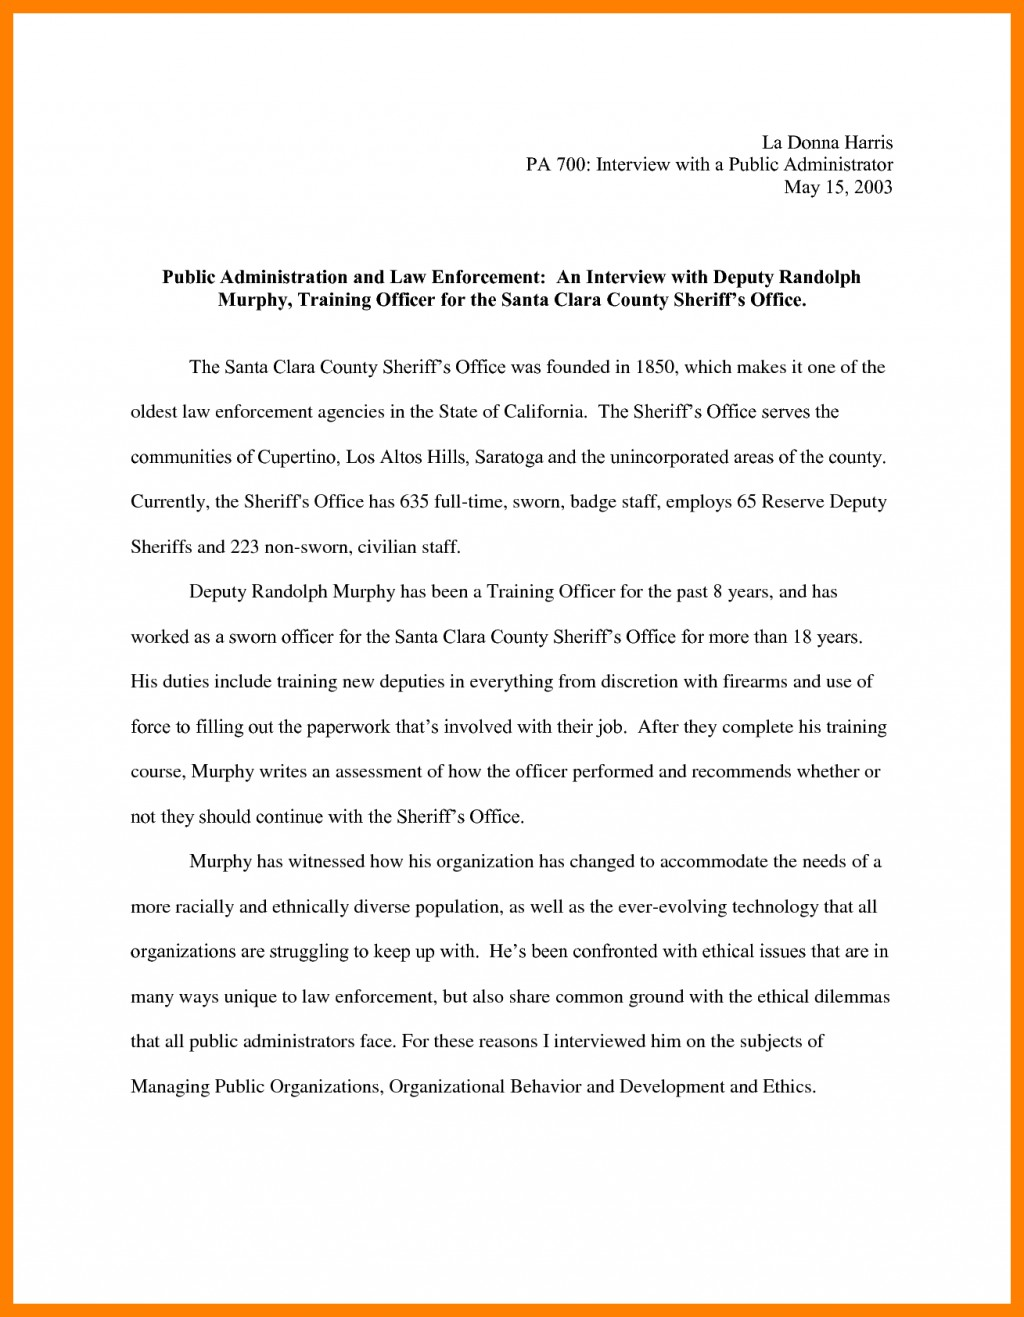 010 Essay Example Narrative Interview Writing An 308901 Exceptional Outline First Job Large